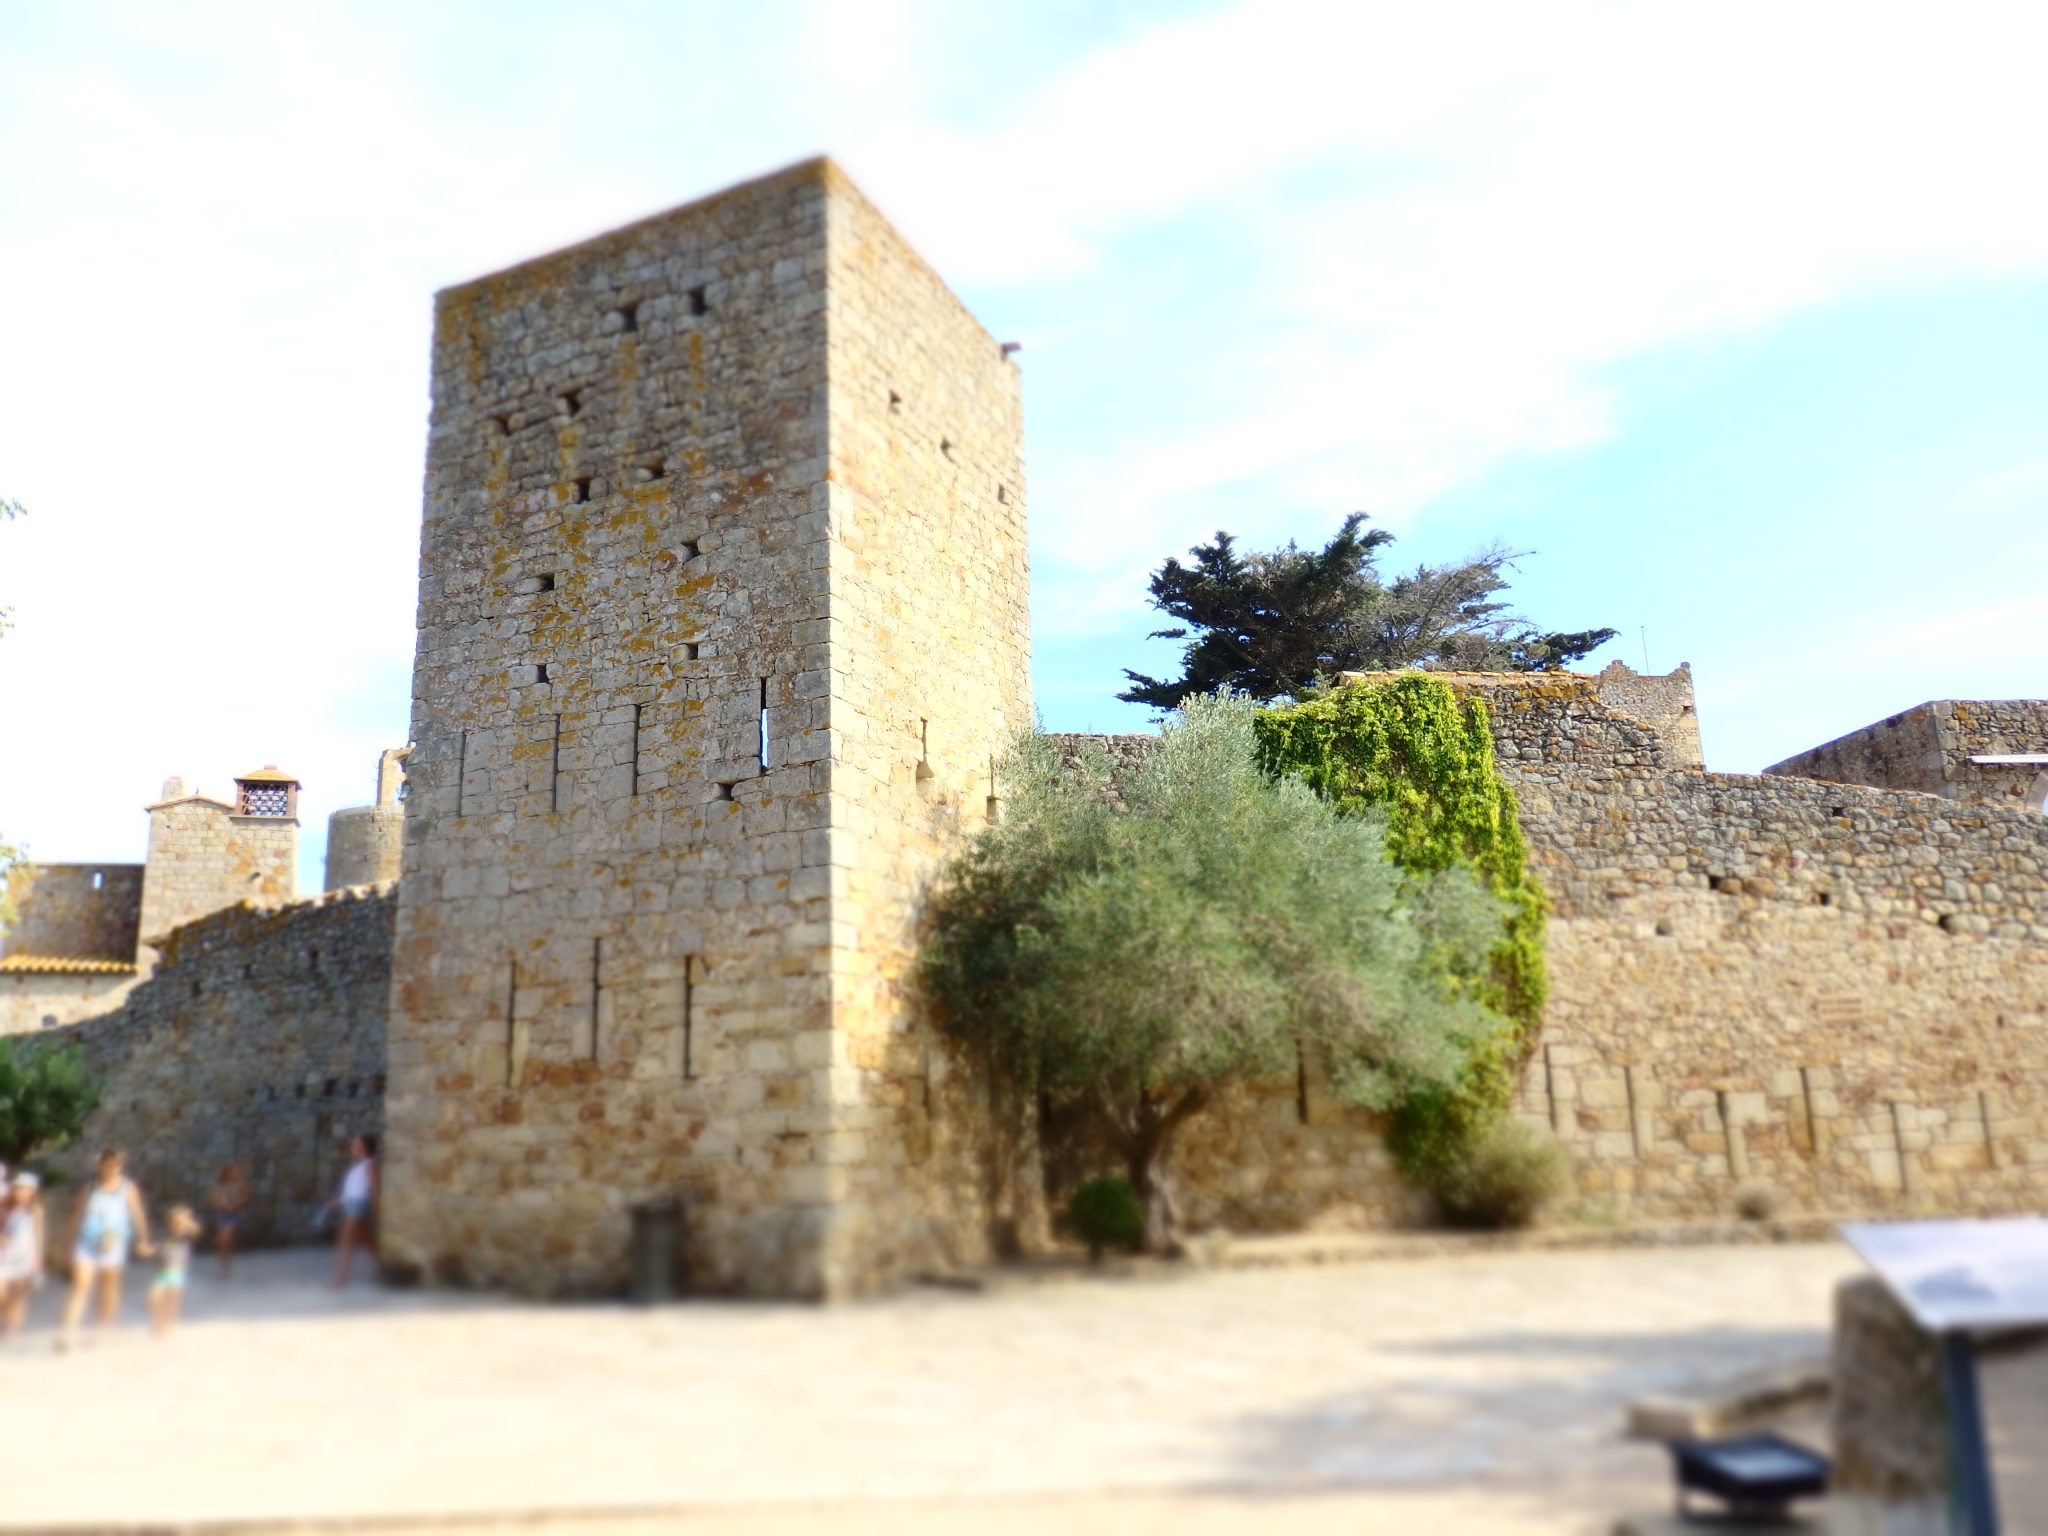 remains of the old defensive structures of Pals, Baix Emporda, Spain